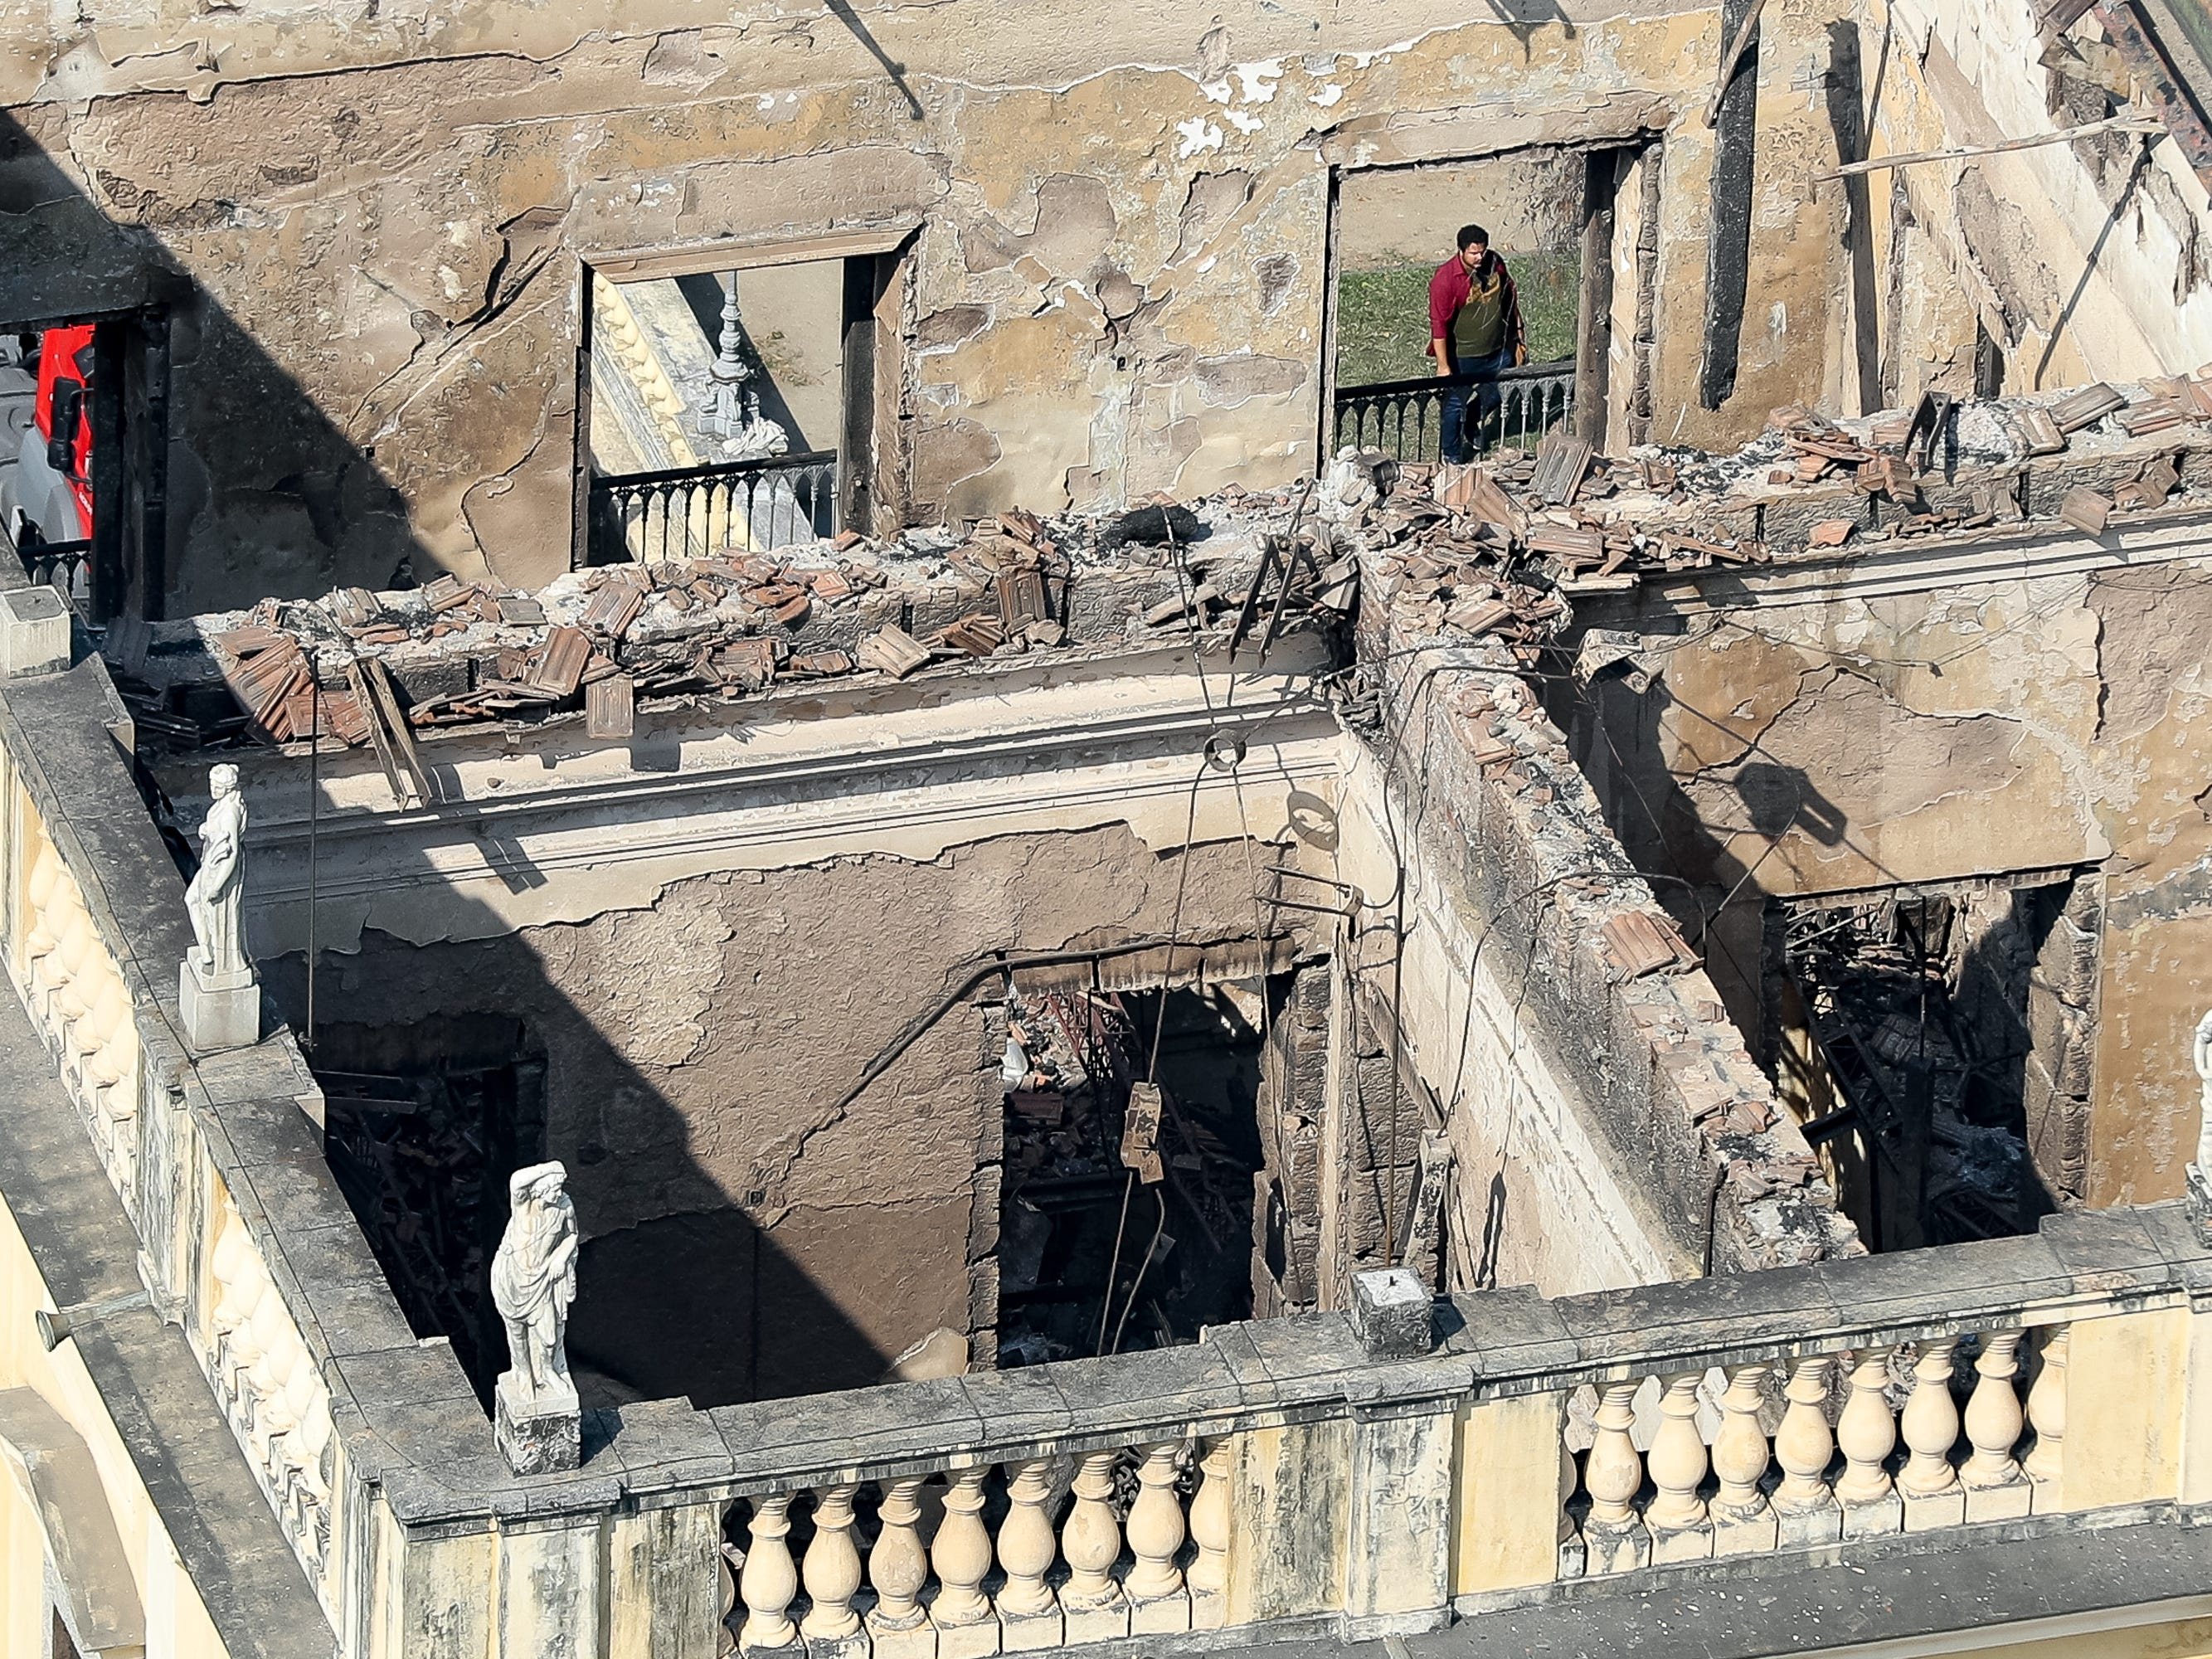 Aerial view of the damage to the National Museum of Brazil after a devastating fire on Sept. 3, 2018 in Rio de Janeiro, Brazil.